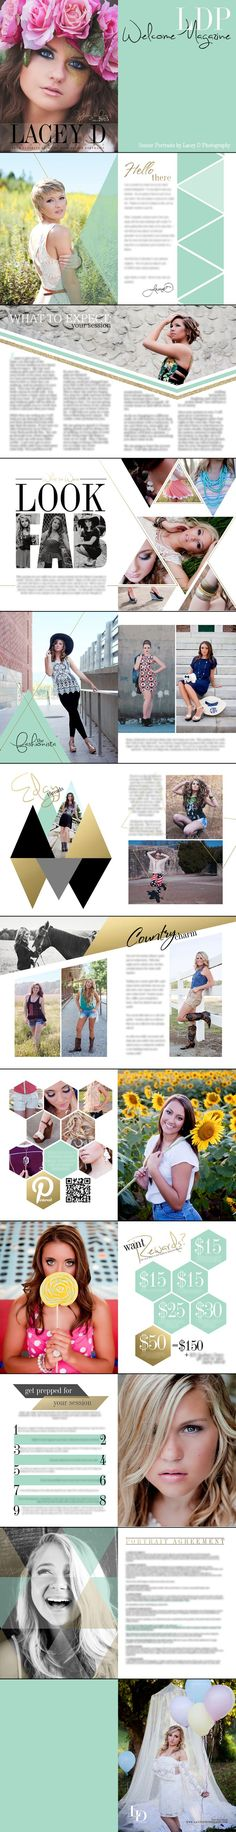 Lacey D Photography Welcome Magazine - Welcome Packet - Senior Portraits - Packaging Check out the website, some girl tried a new diet and tracked her results: